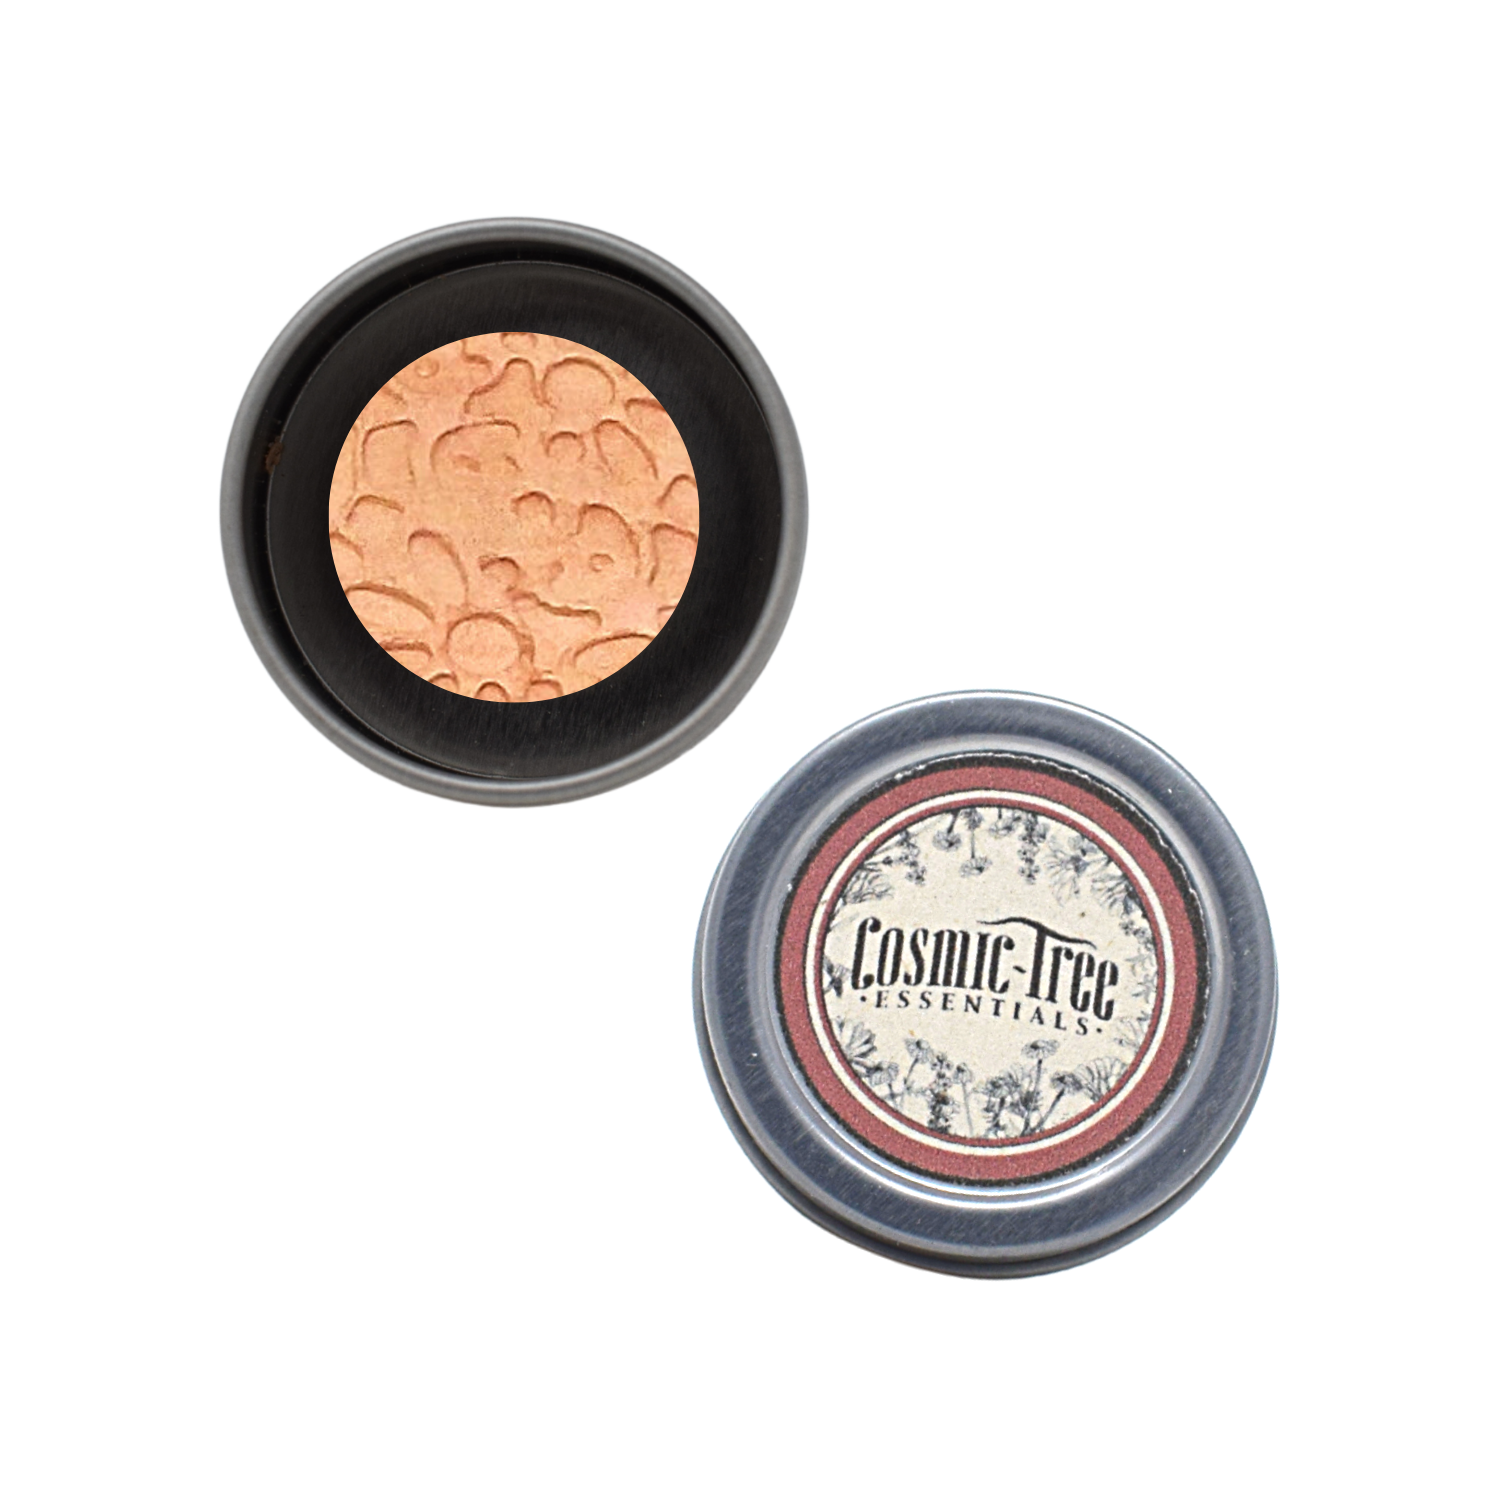 Crucible Pressed Eye Shadow in Cinnamon Rose